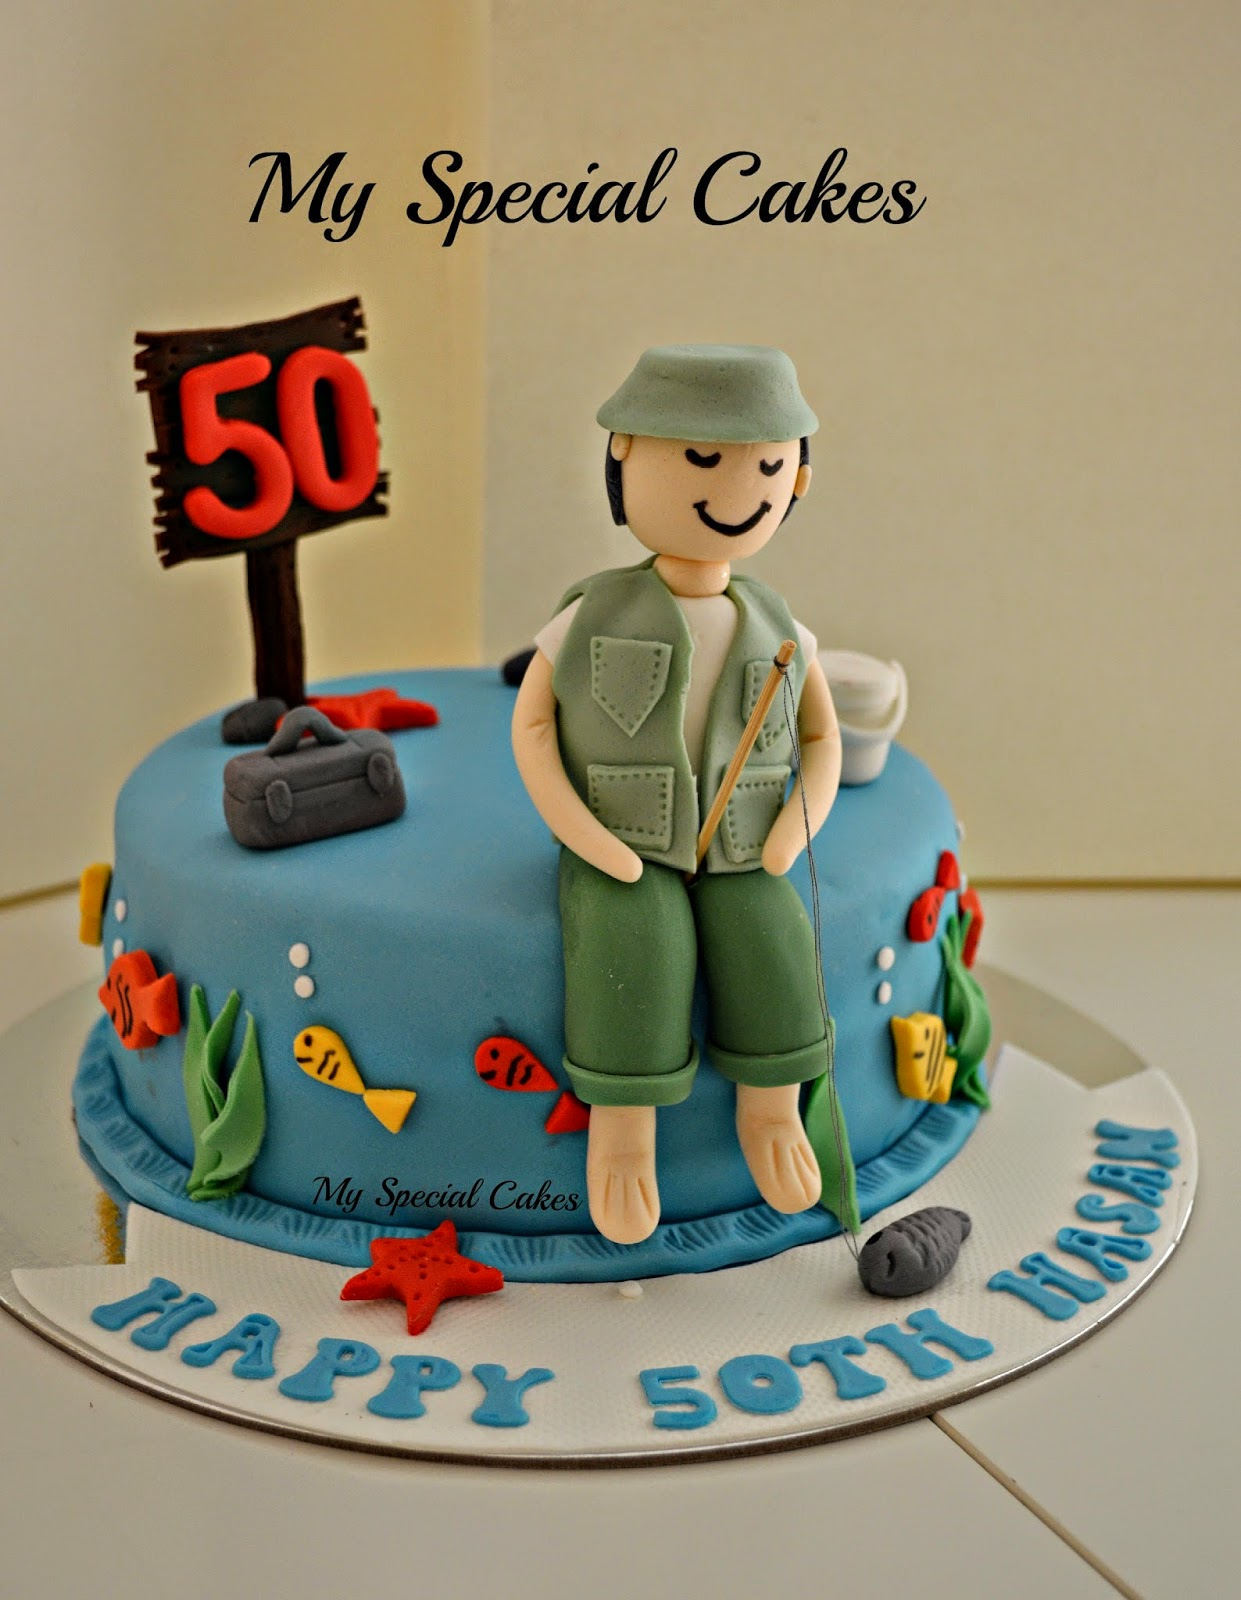 My Special Cakes Fisherman Cake